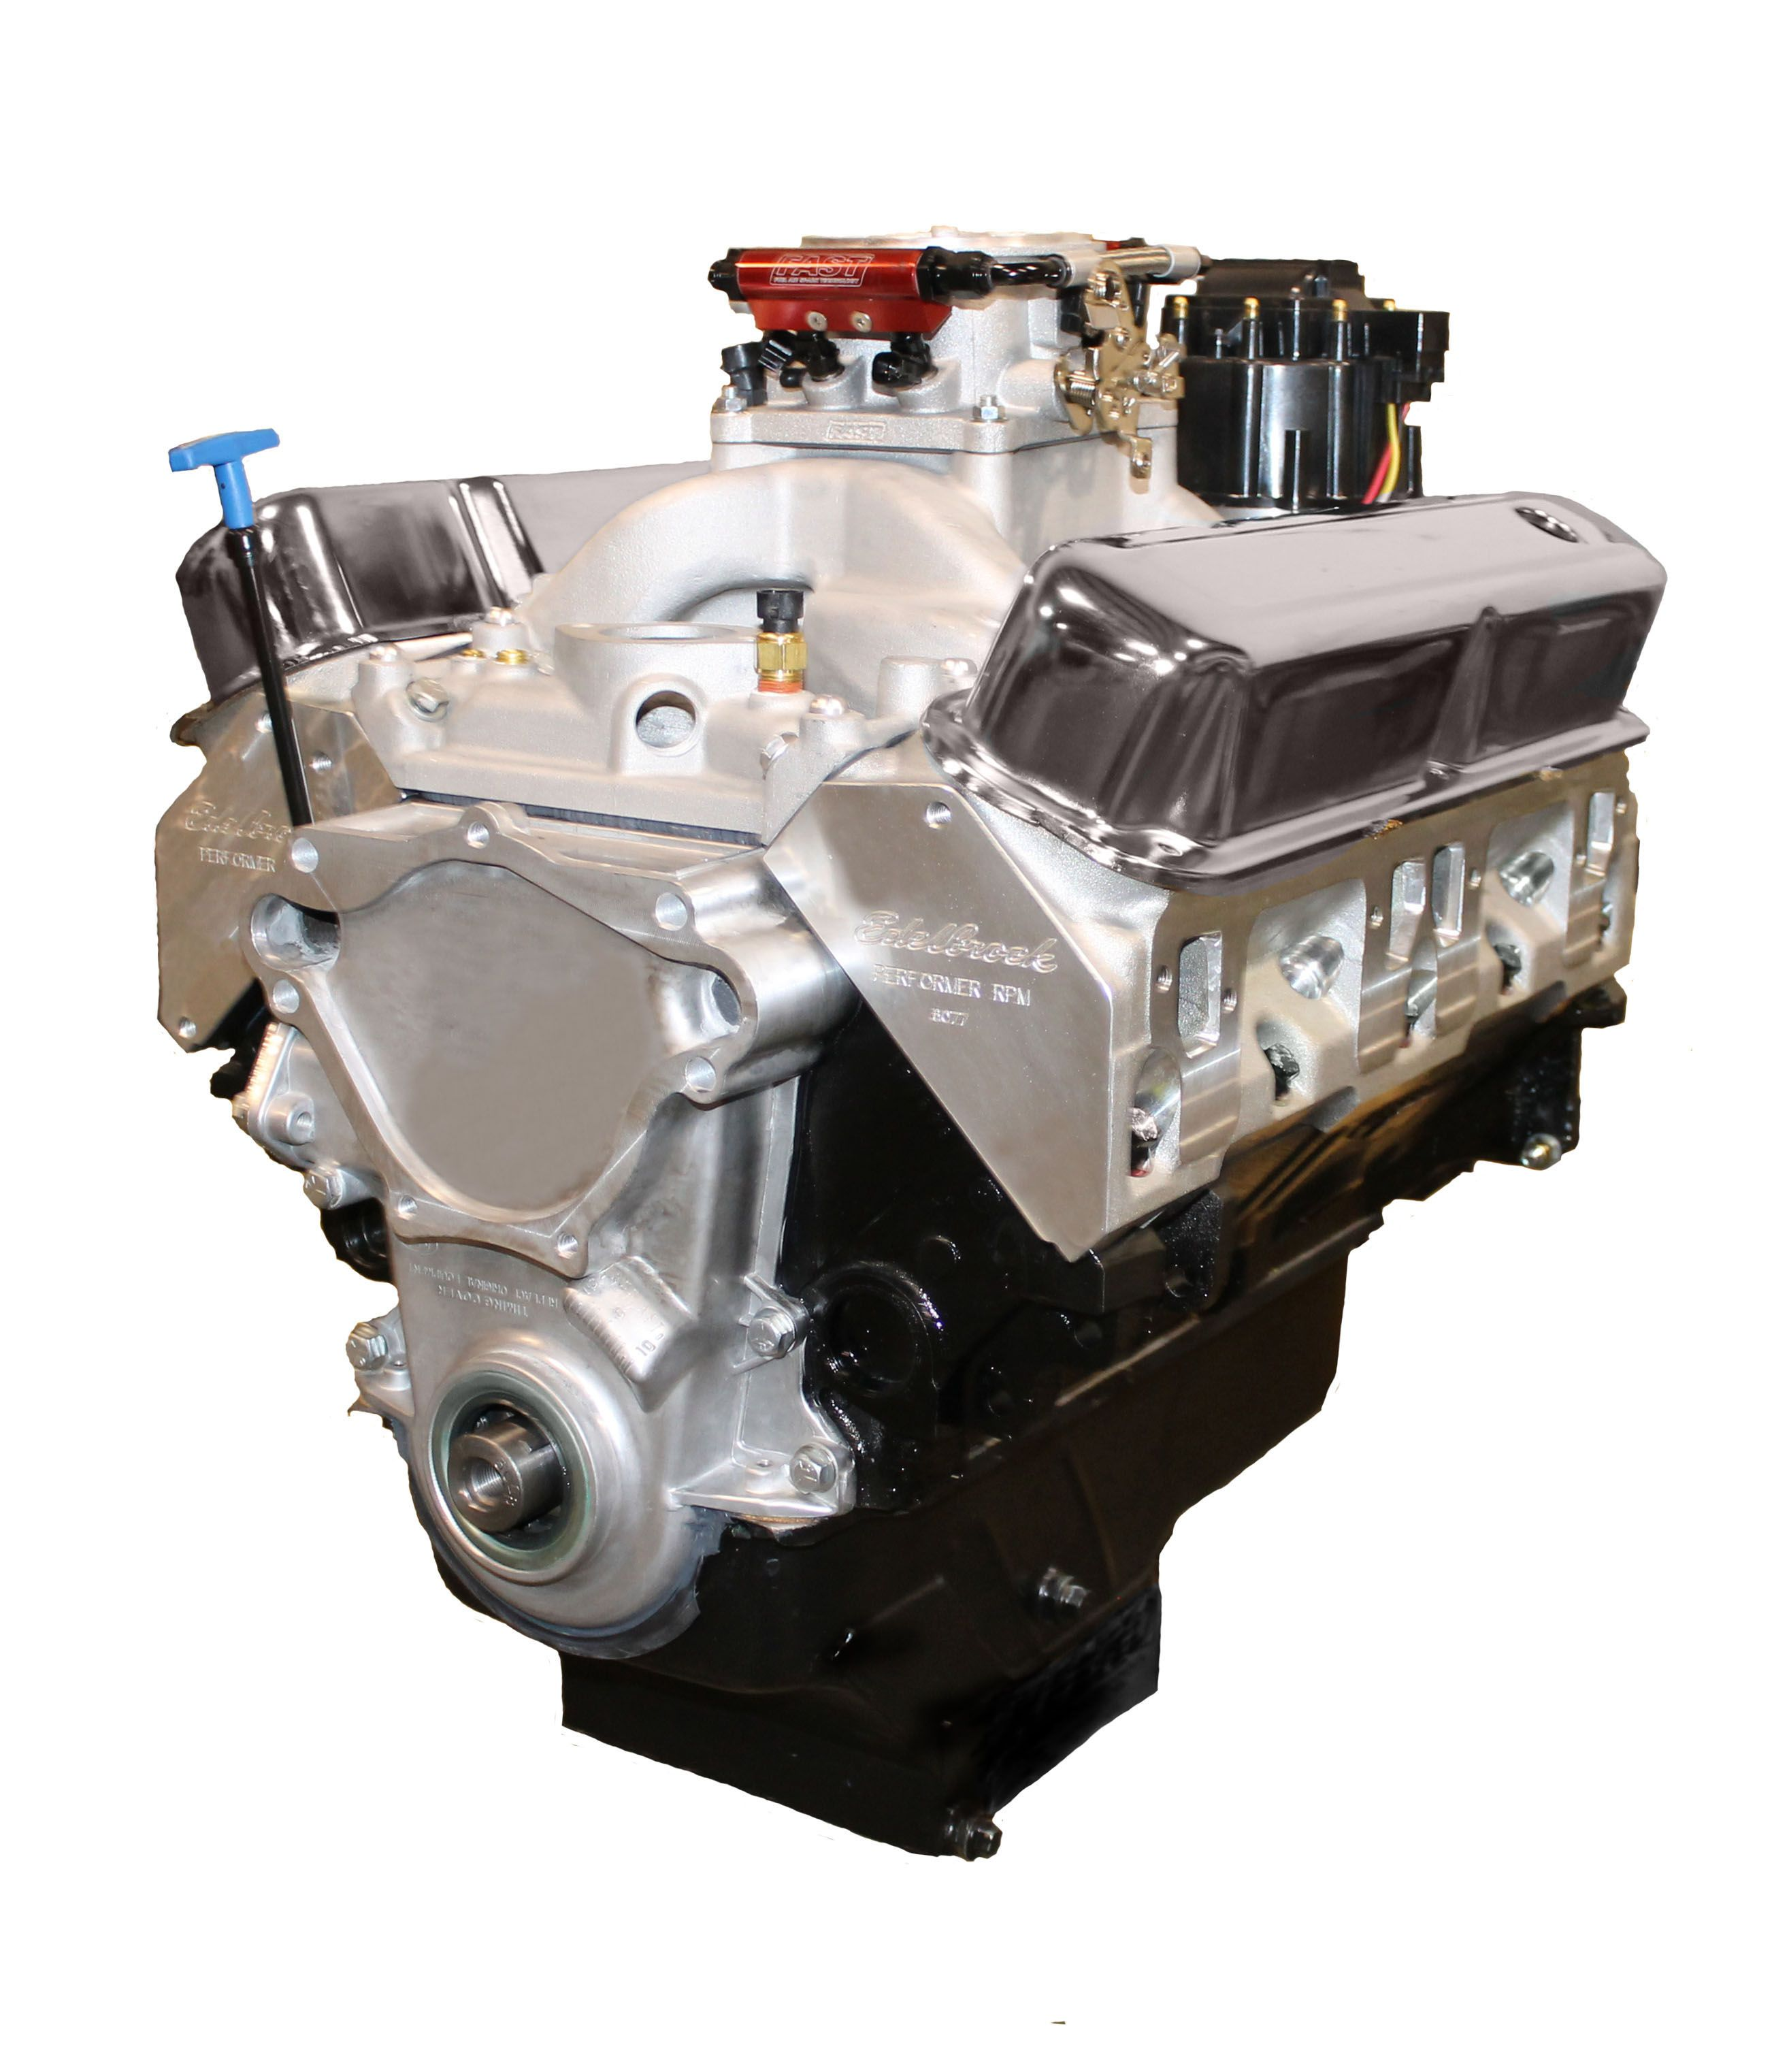 408ci stroker crate engine small block chrysler style dressed blueprint engines bpc4083ctf crate engine crateengine blueprintengines 408stroker bpc4083ctf malvernweather Gallery